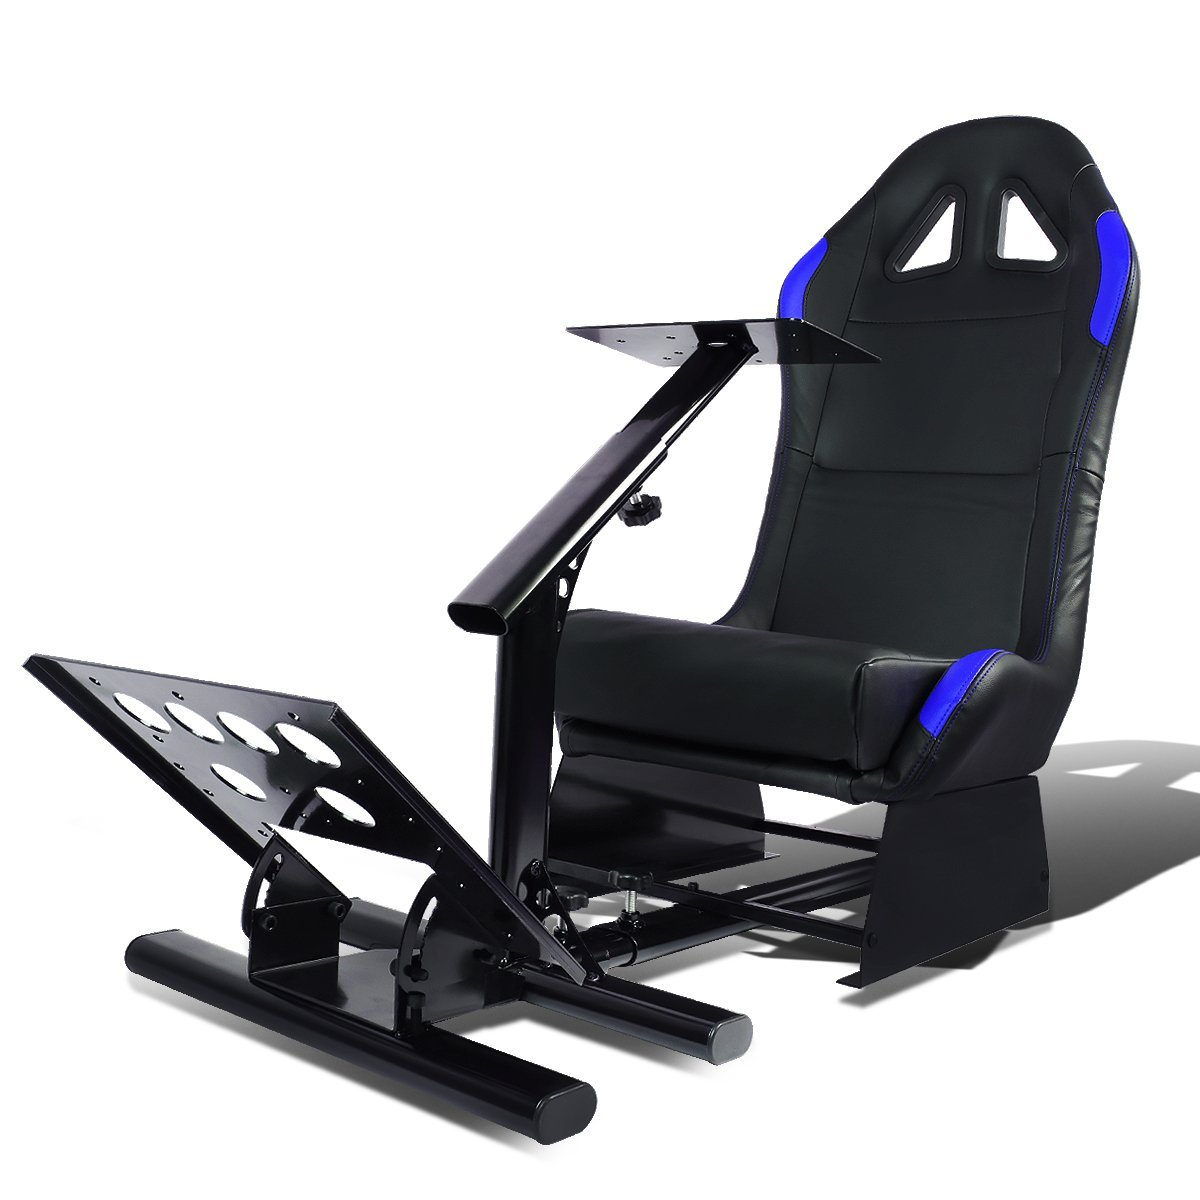 Racing Seat Driving Simulator Cockpit Adjustable Gaming Chair + Steering Wheel